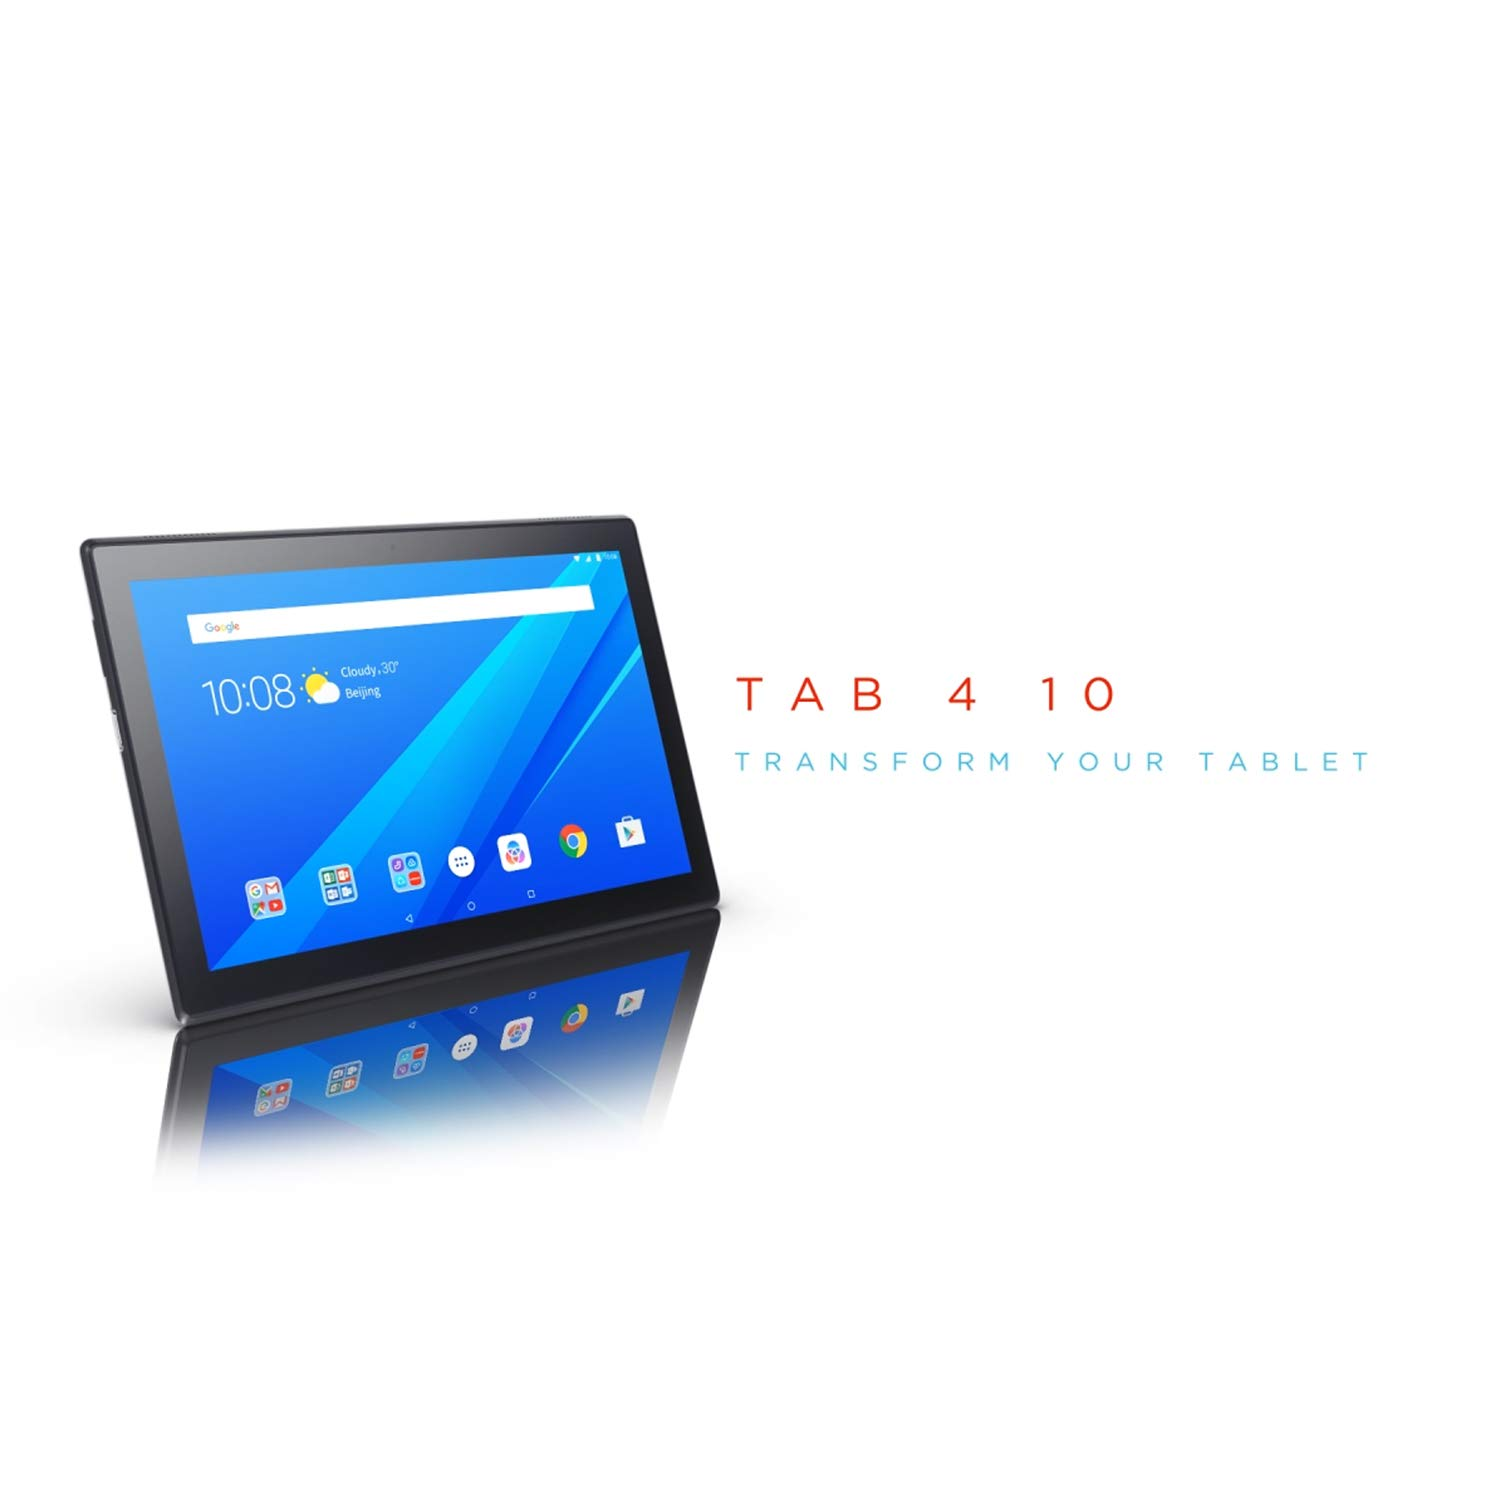 Lenovo Tab 4, 10.1'' Android Tablet, Quad-Core Processor, 1.4GHz, 2GB RAM, 32GB Storage, Slate Black, ZA2J0143US by Lenovo (Image #7)